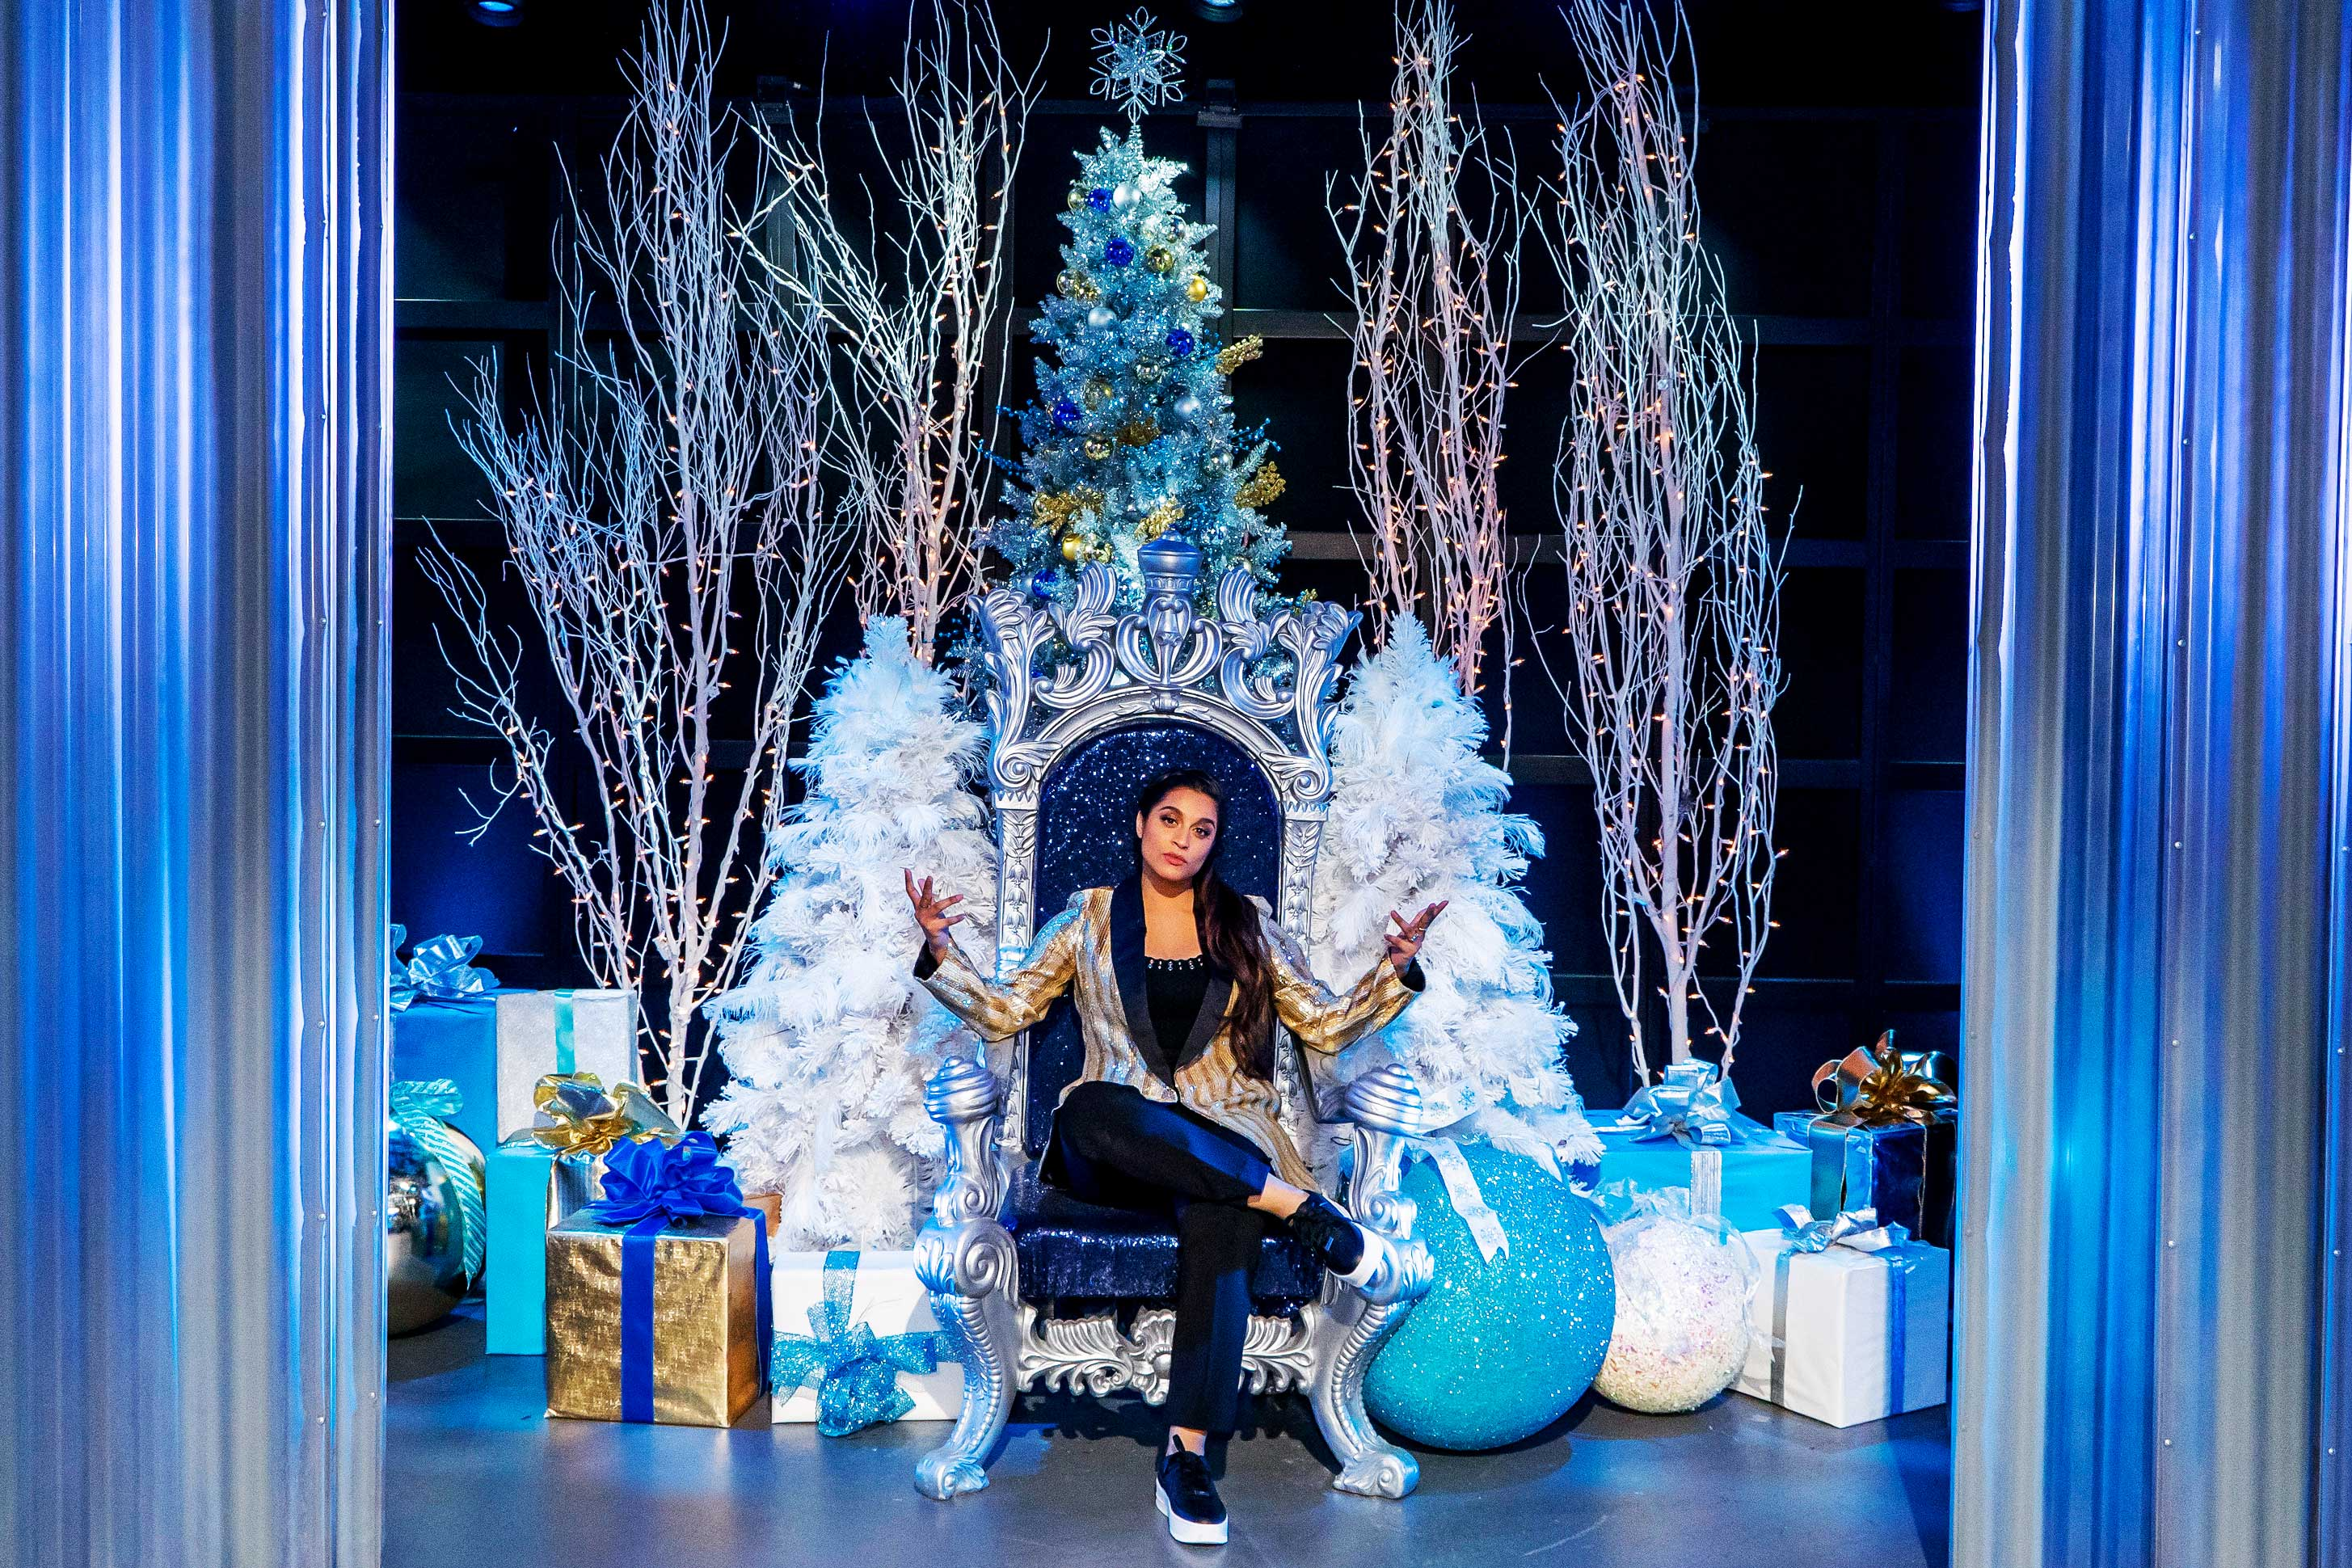 YouTube personality Lilly Singh sits onstage on a throne chair surrounded by Christmas decorations.